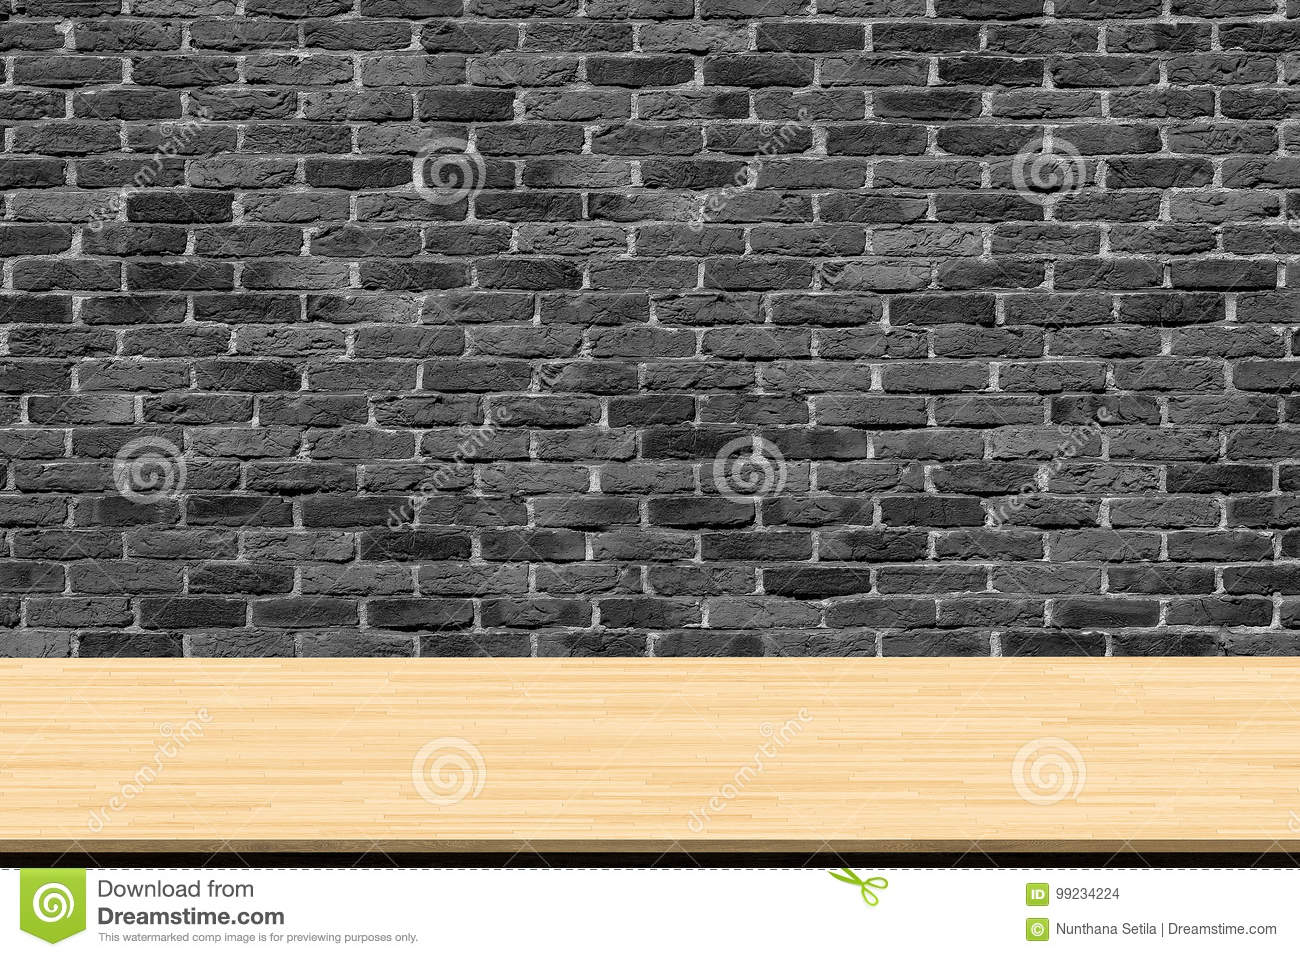 Adding Brick Wall Interior Abstract Wooden Table Texture On Brick Wall Background Stock Photo